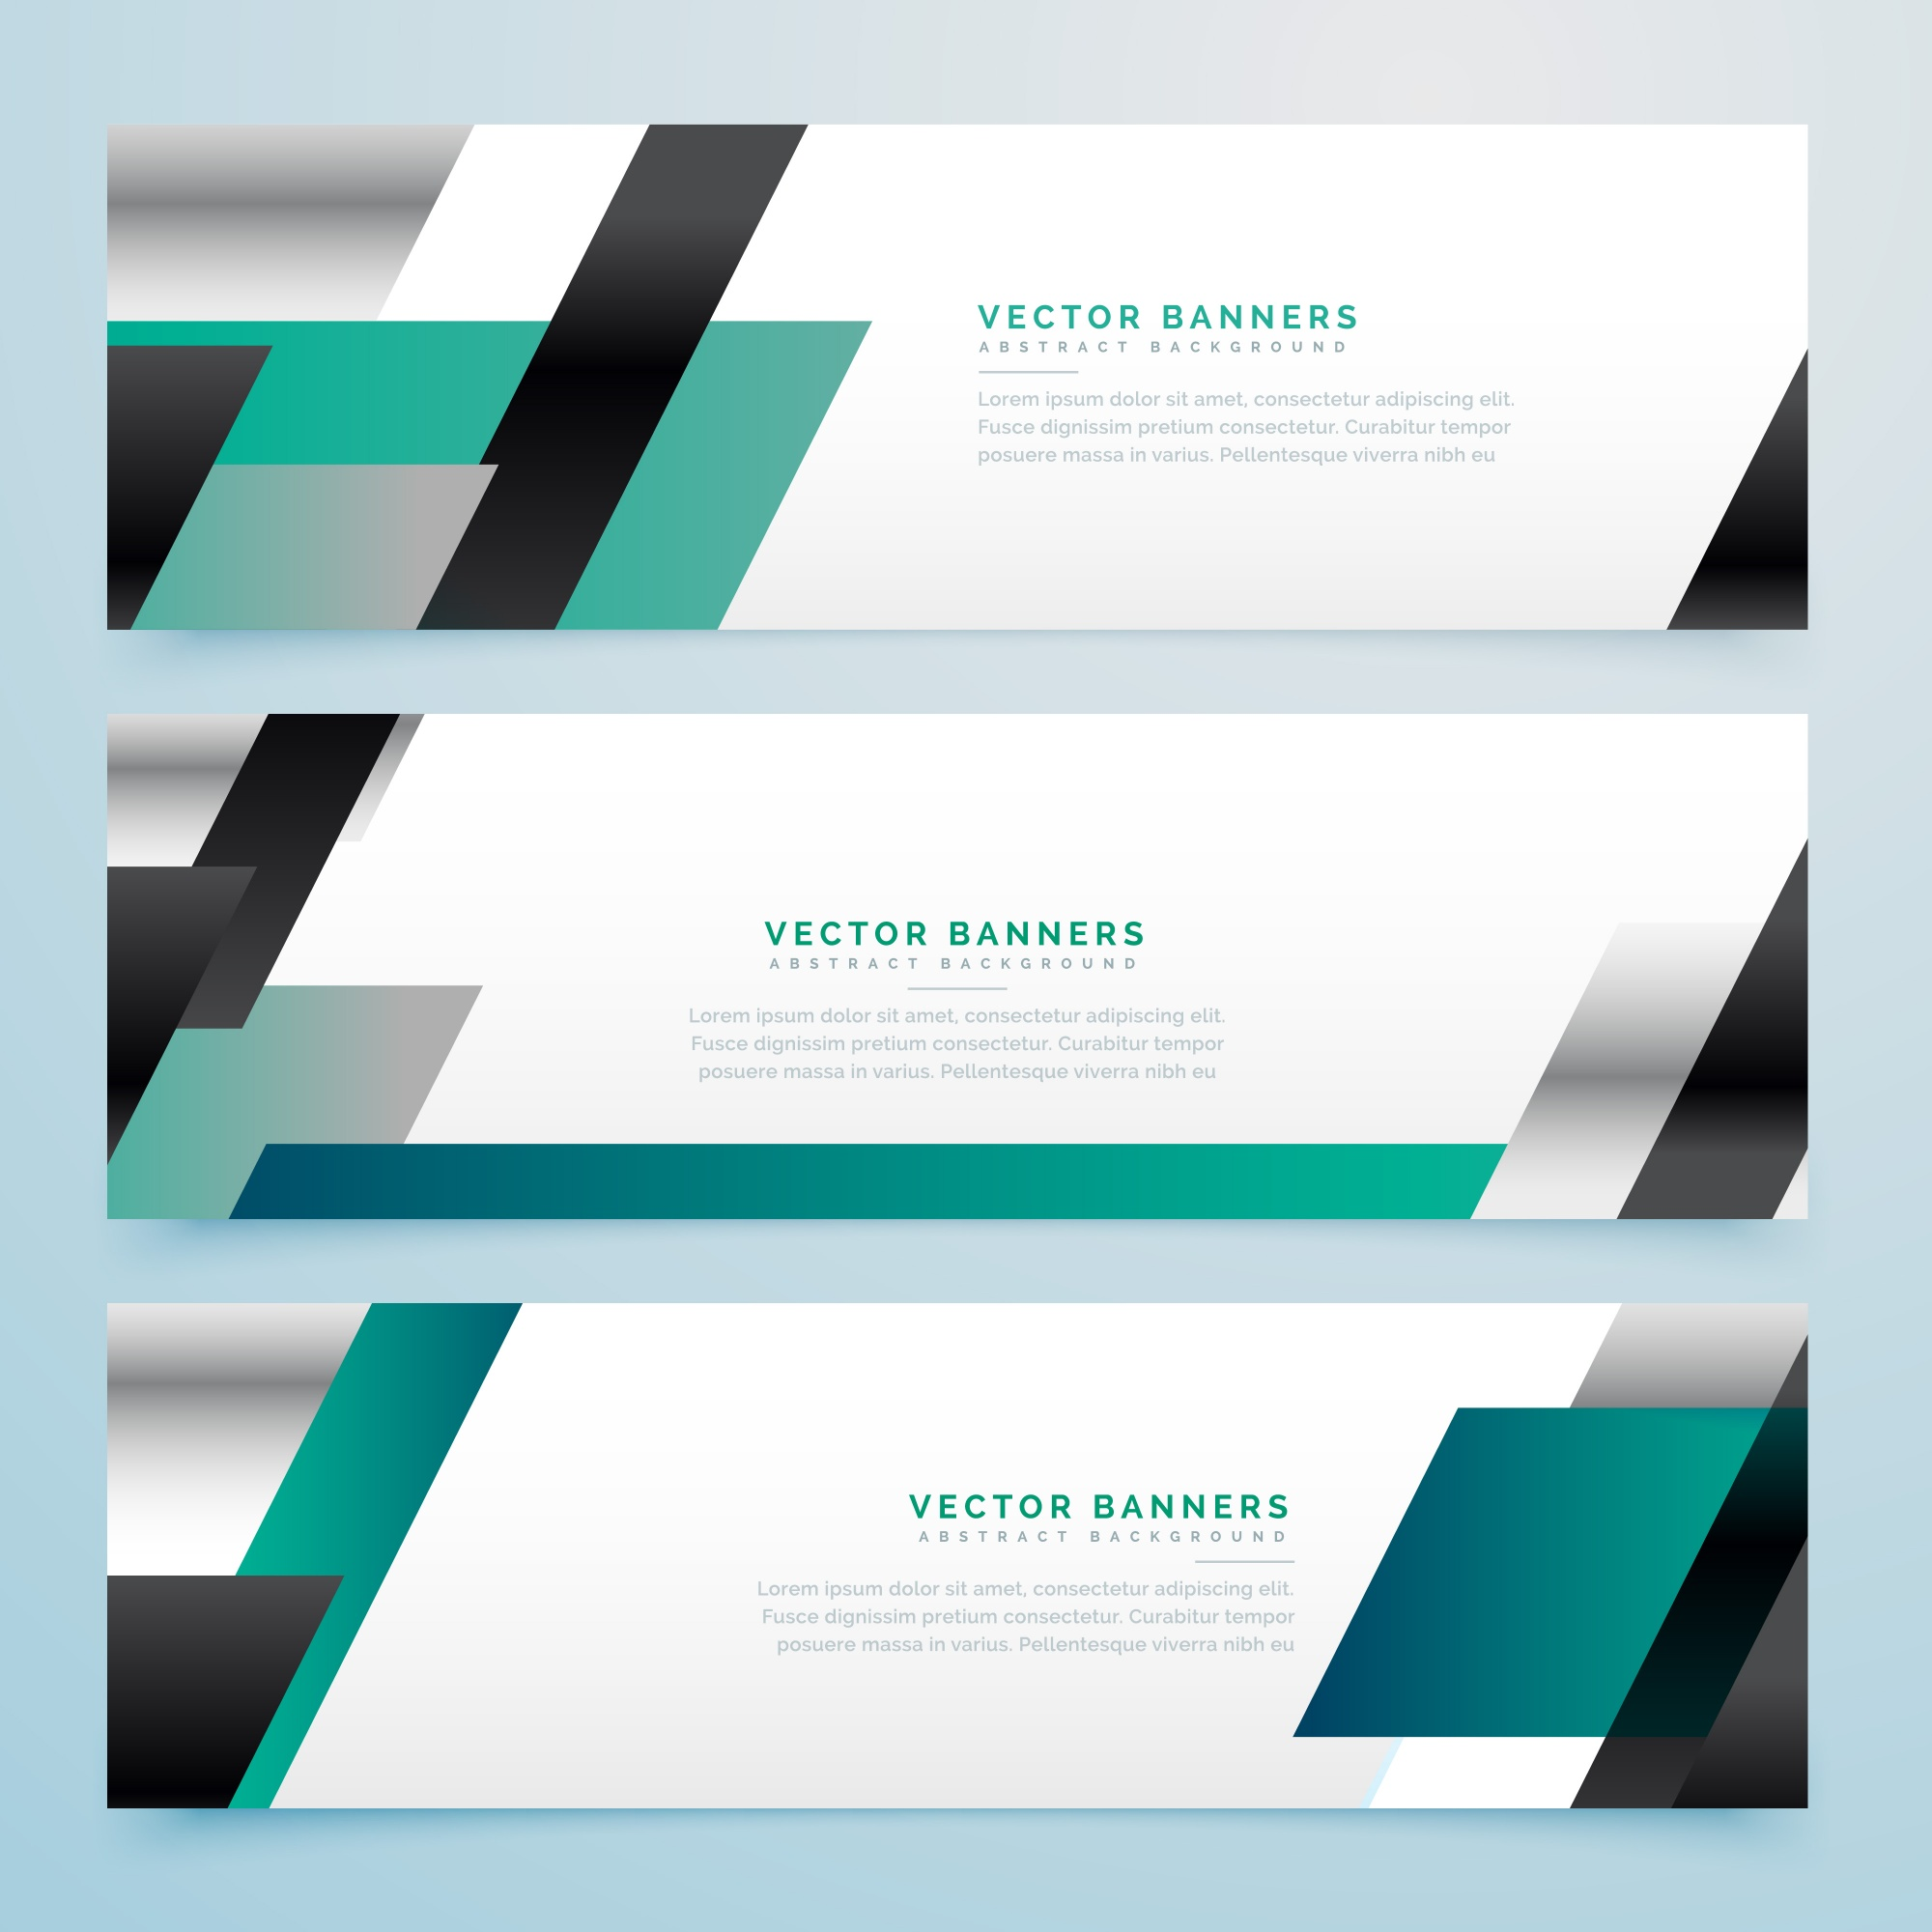 Modern business style banners with geometric shapes